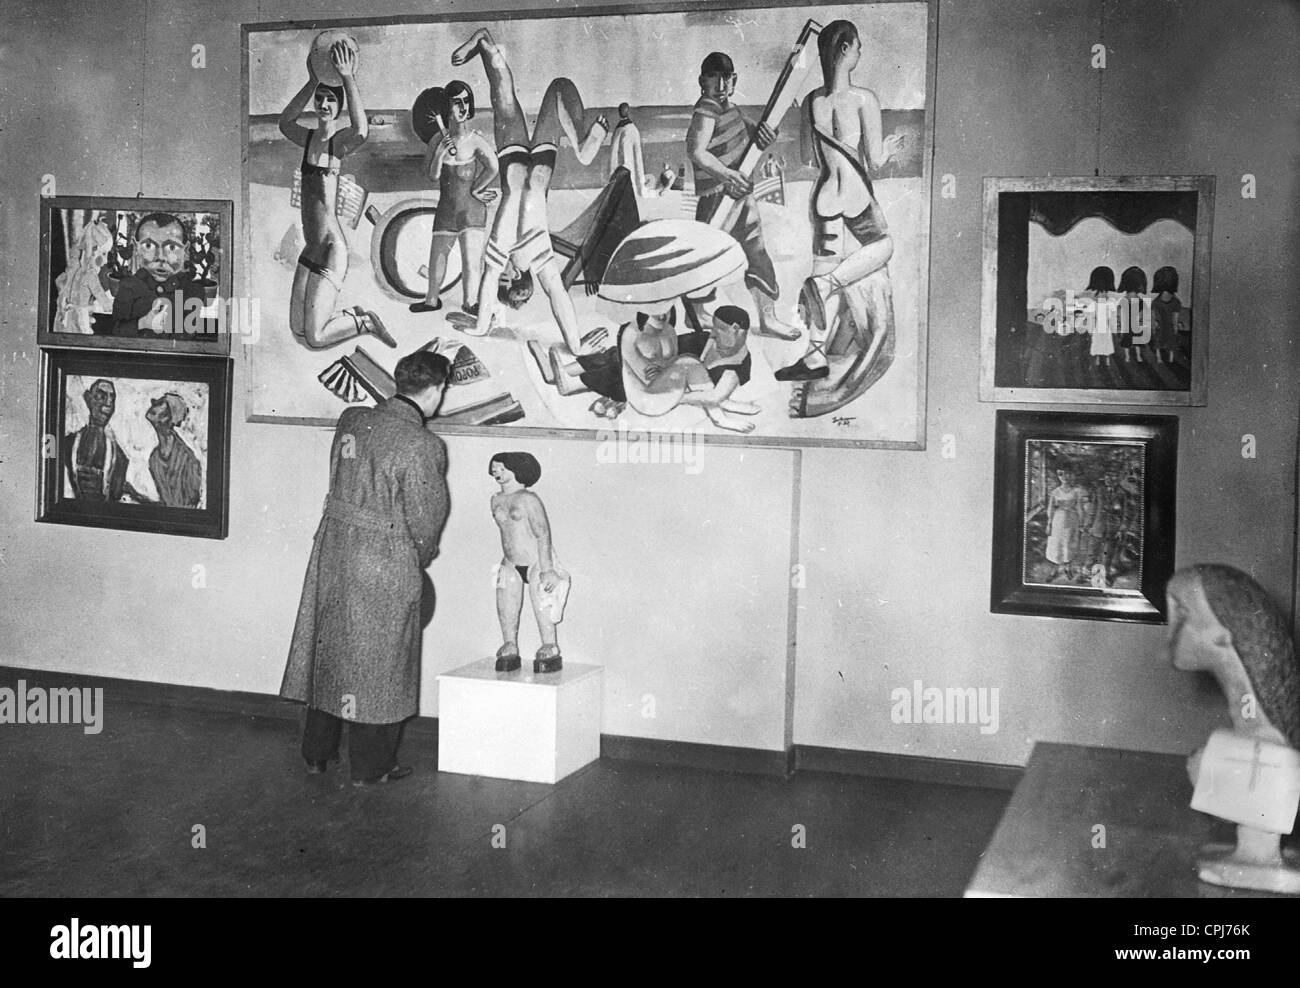 the degenerate art exhibition and the Confiscated by the german government, exhibitions of degenerate artworks took place in cities including berlin, dresden and leipzig  degenerate art exhibitions.